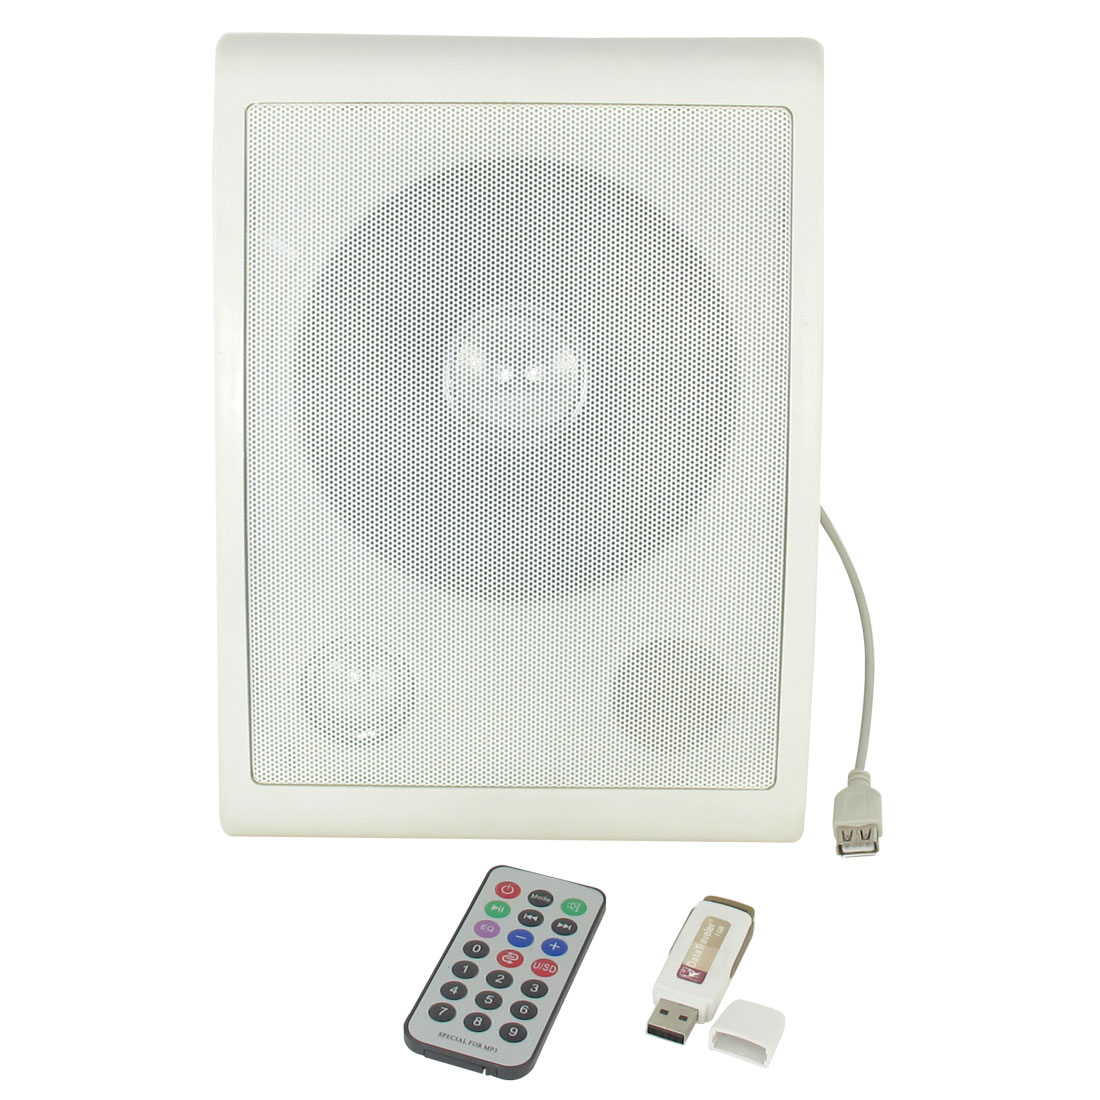 AC 220V White Retangle MP3 Wall Mounted Speaker w Remote Flash Disk